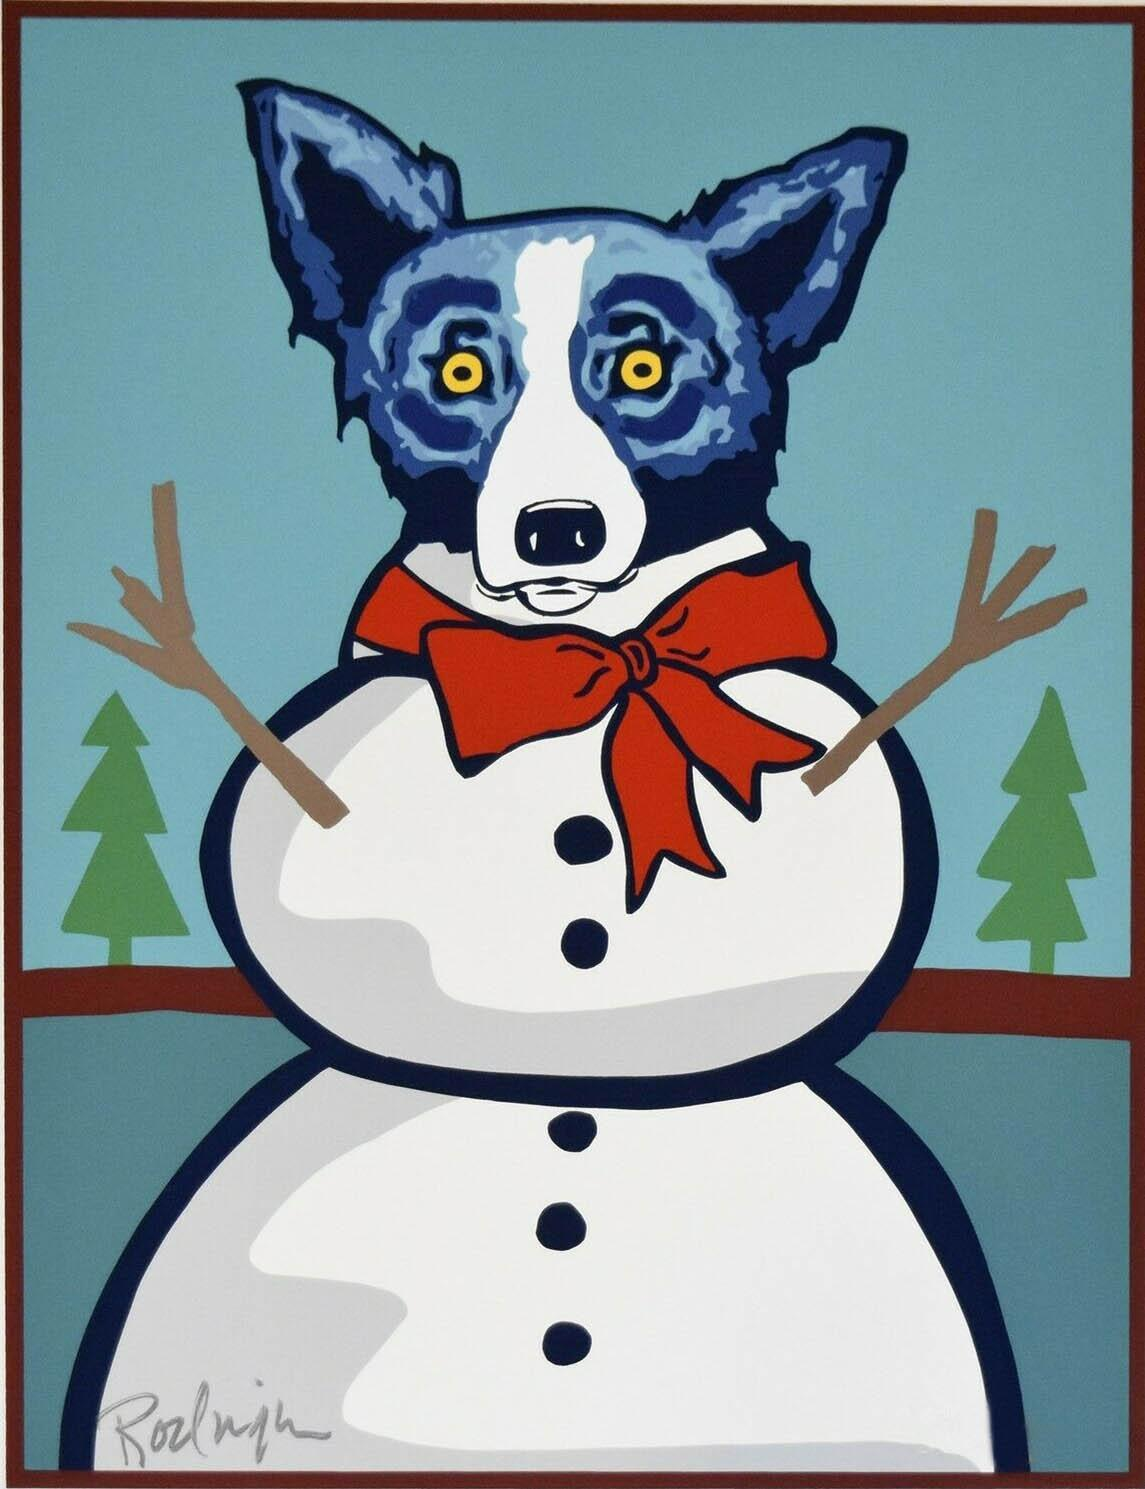 A136 # George Rodrigue Blue Dog Frosty The Snowman Home Decor pintado à mão HD Imprimir pintura a óleo sobre tela Wall Art Canvas Pictures 200116